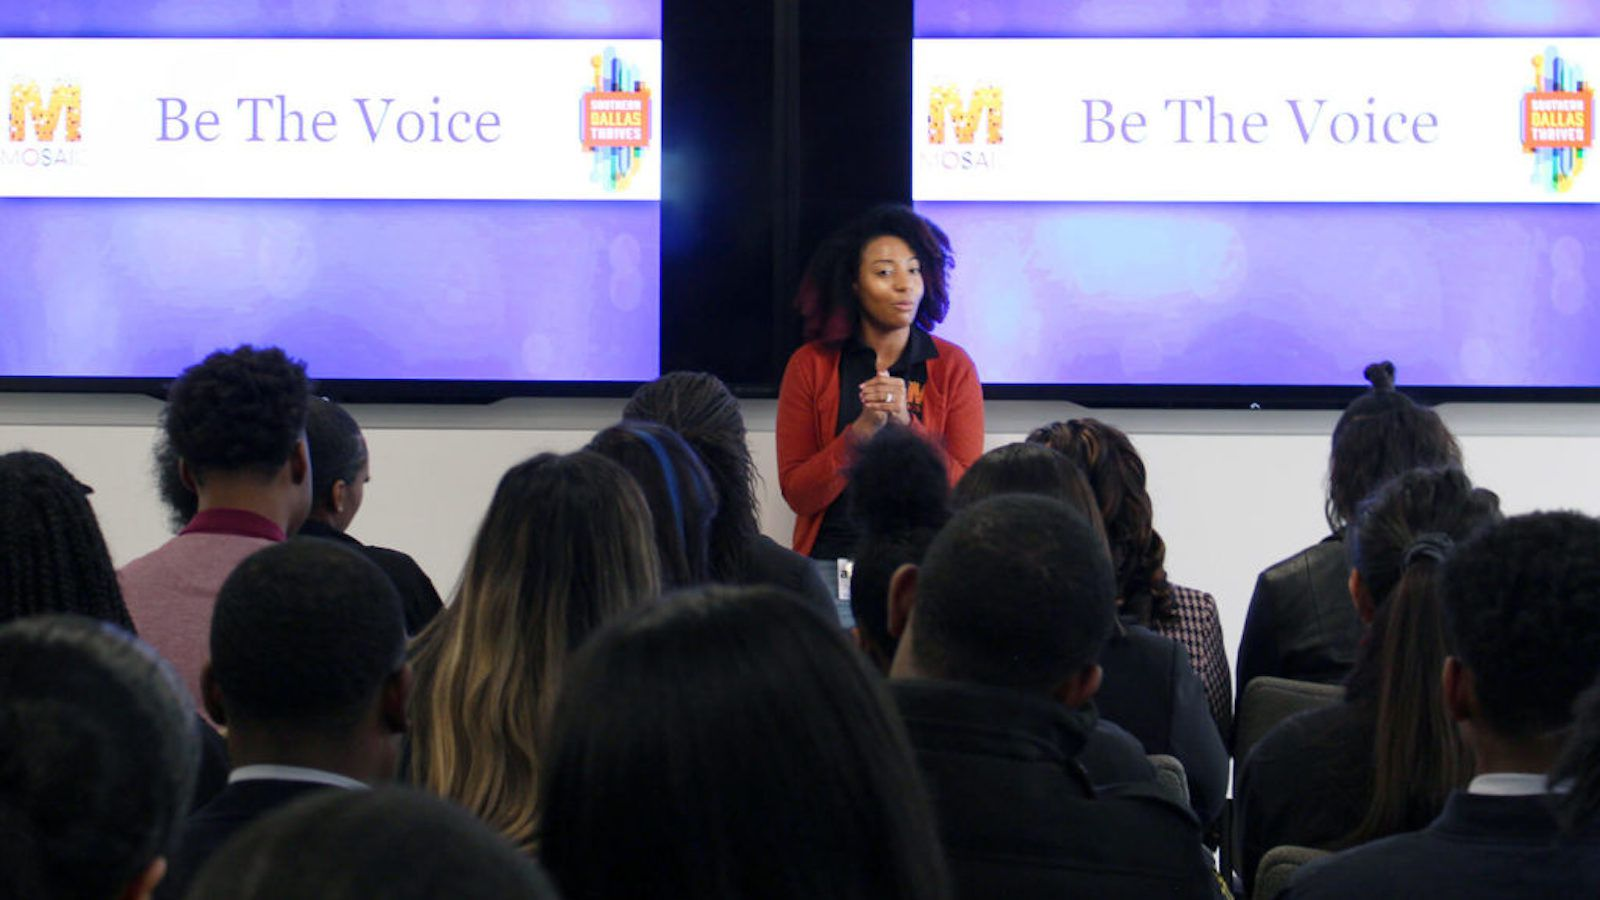 Adria Toliver Lemelle, human resources manager at Frito-Lay, grew up in southern Dallas and helped lead the Frito-Lay event that mentored nearly 50 high school students from southern Dallas-area high schools.